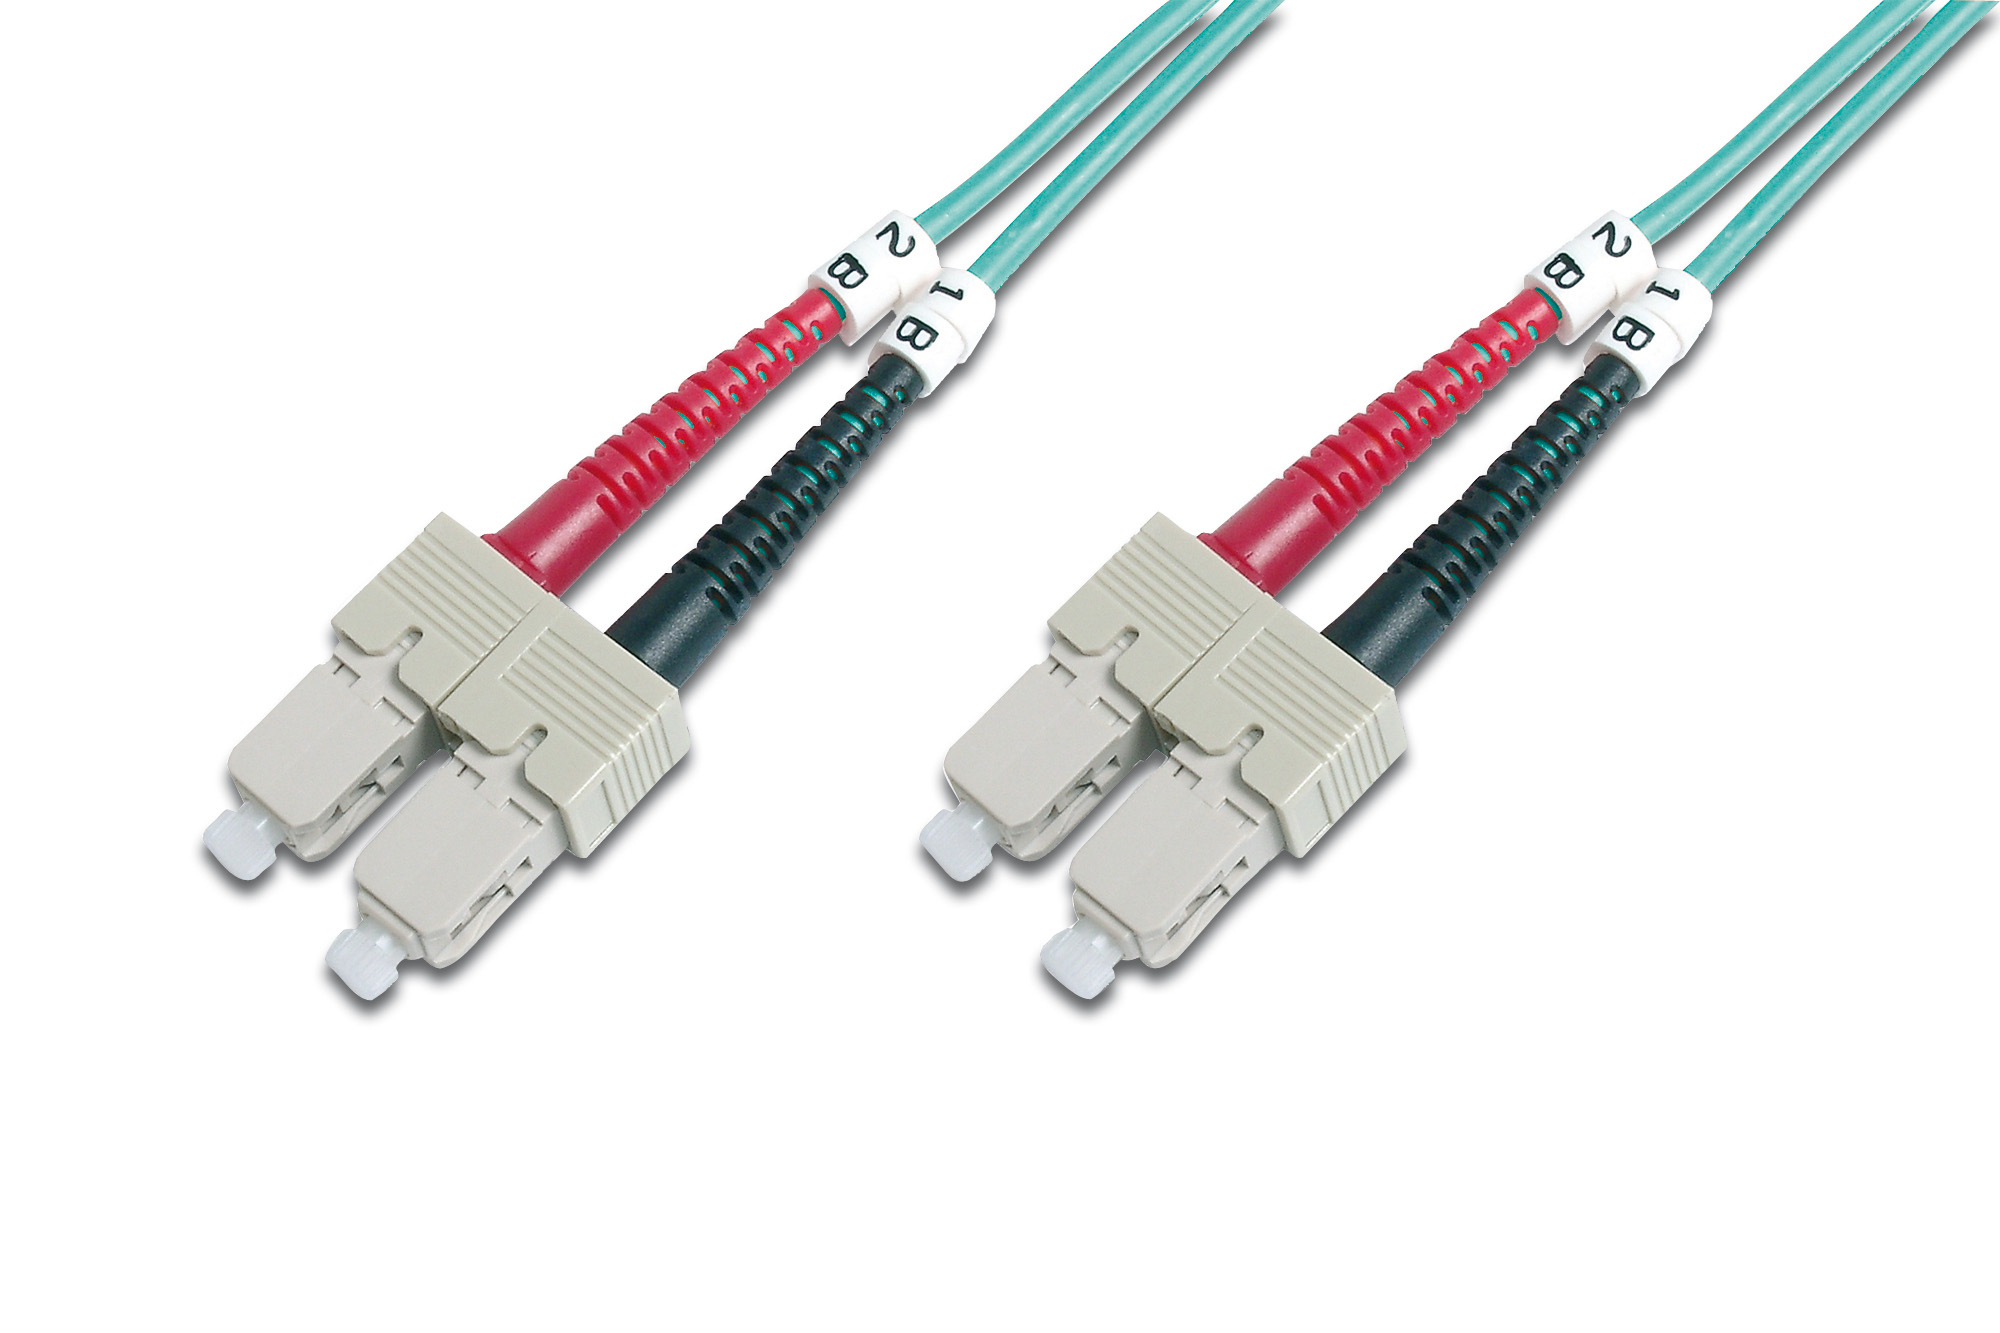 Digitus DK-2522-01/3 fibre optic cable 1 m SC Multicolor